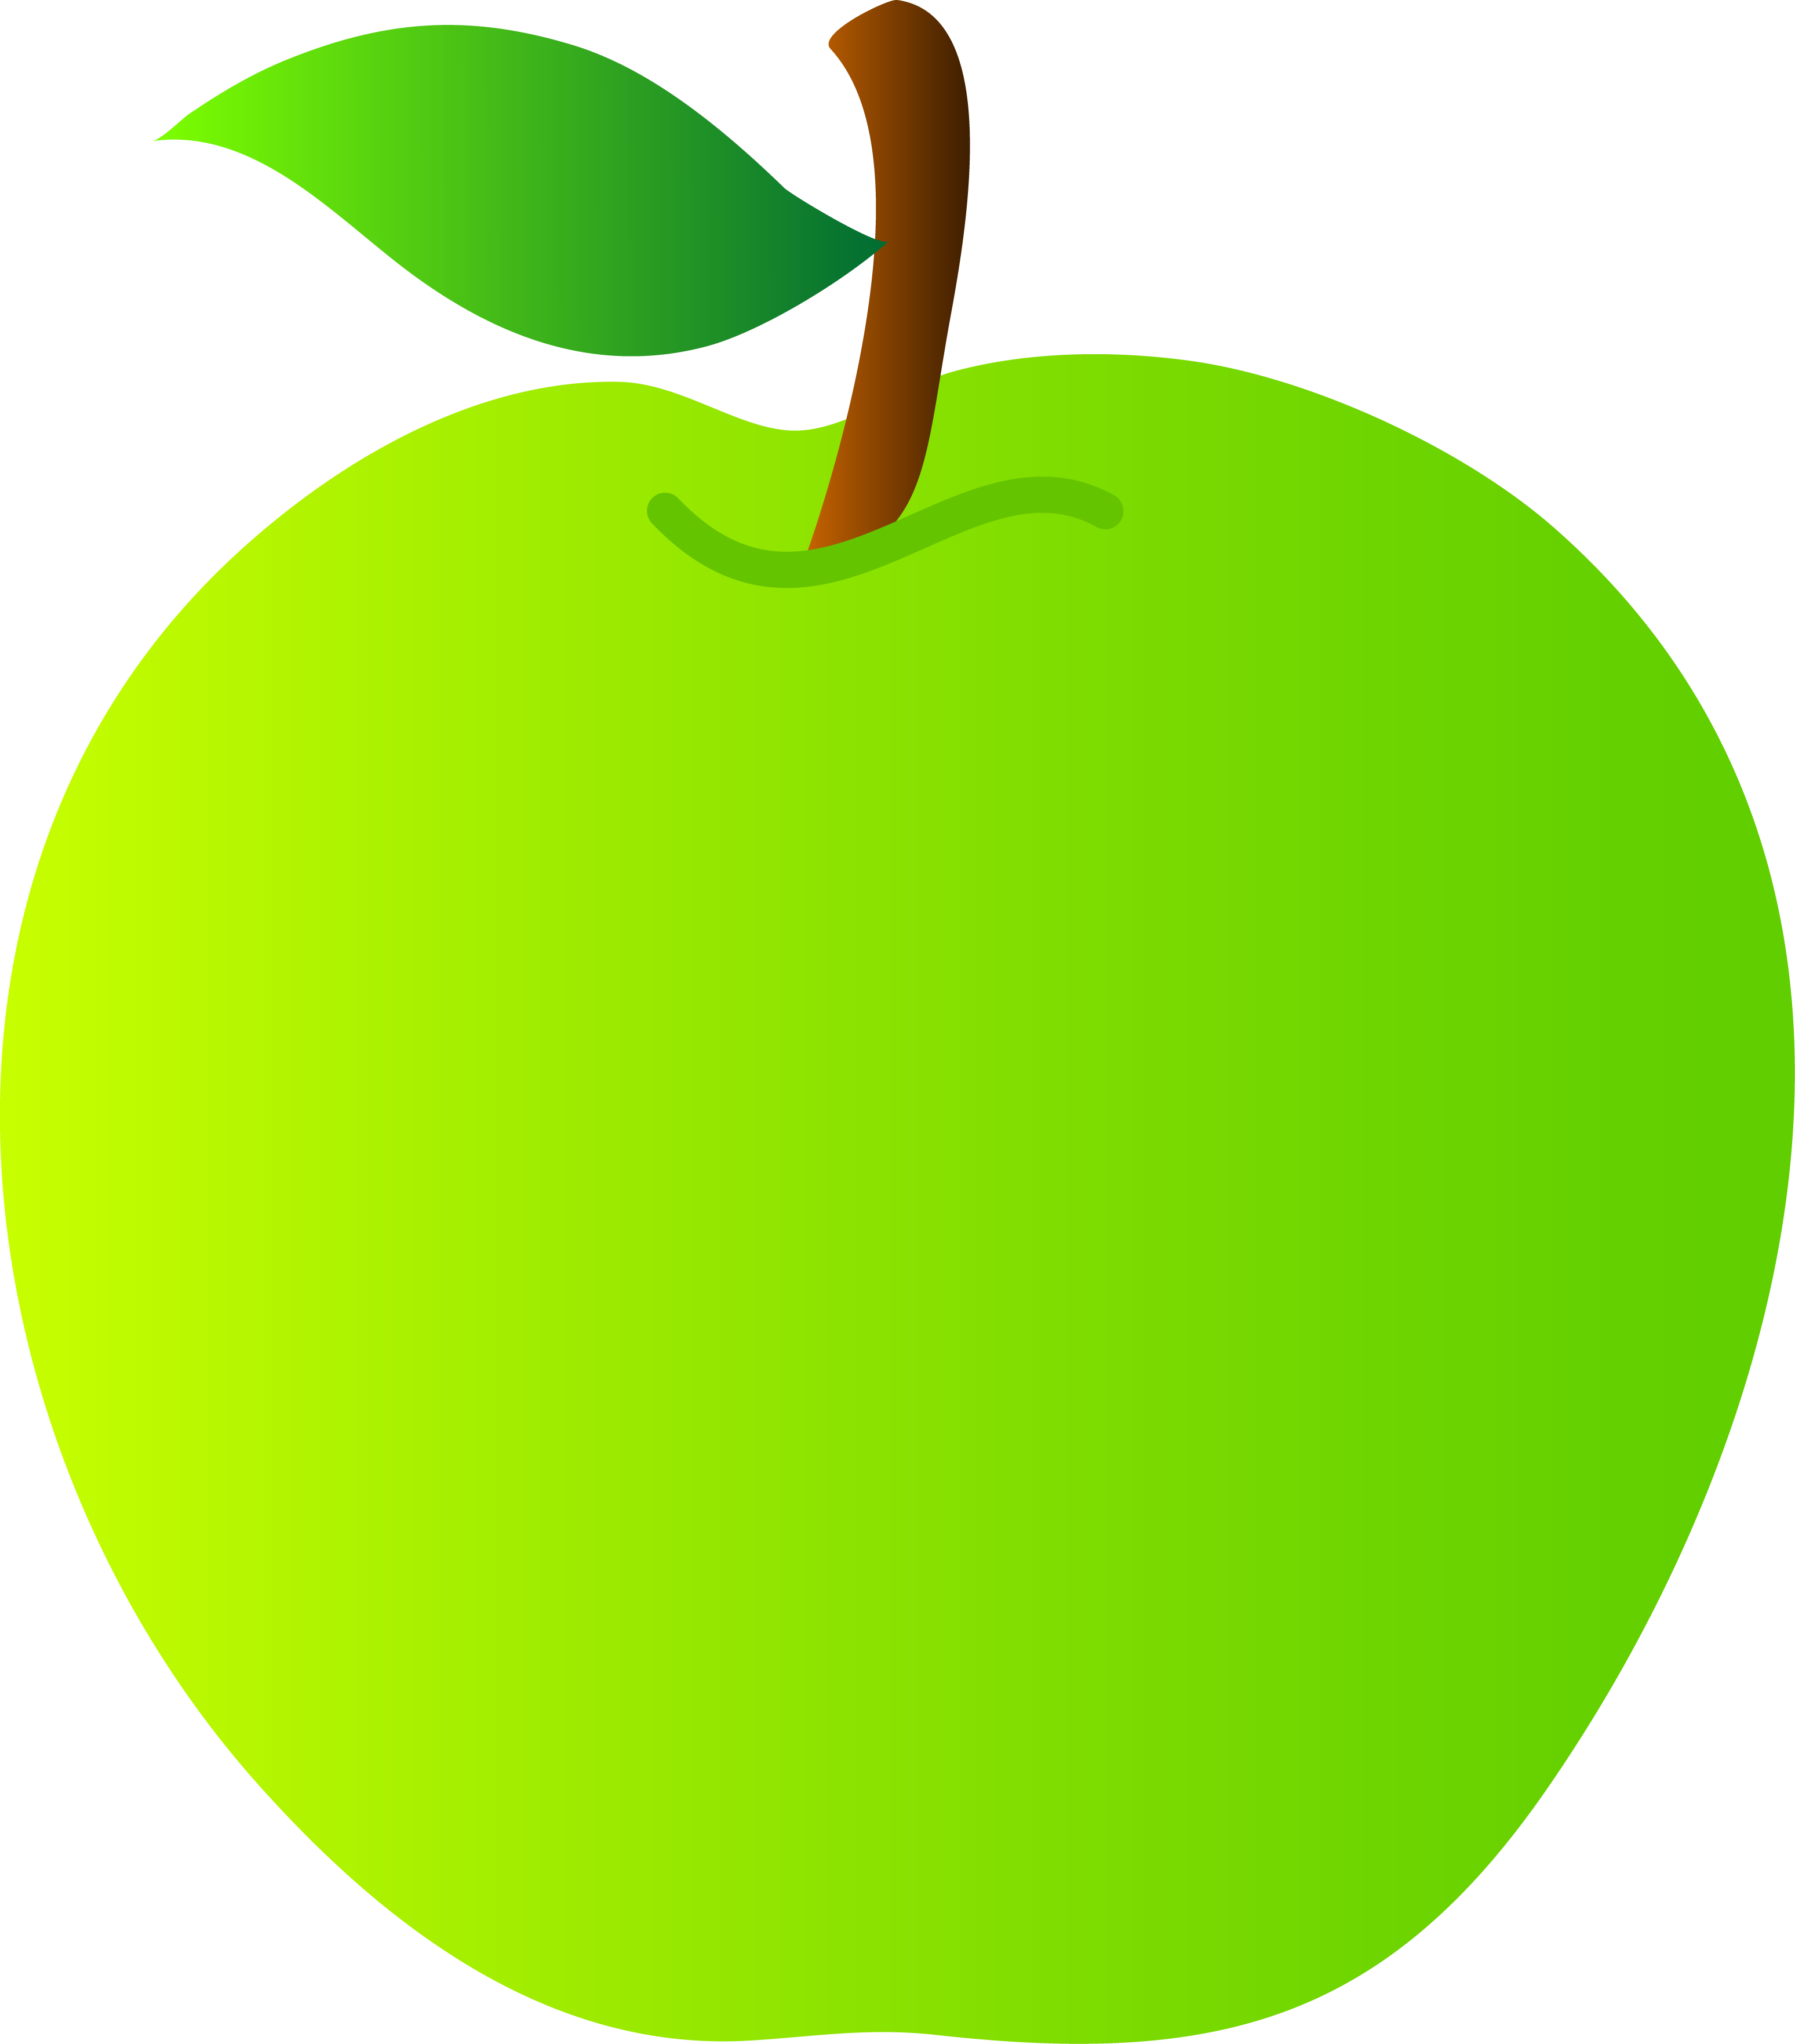 Free Cartoon Pictures Of Apples, Download Free Clip Art.